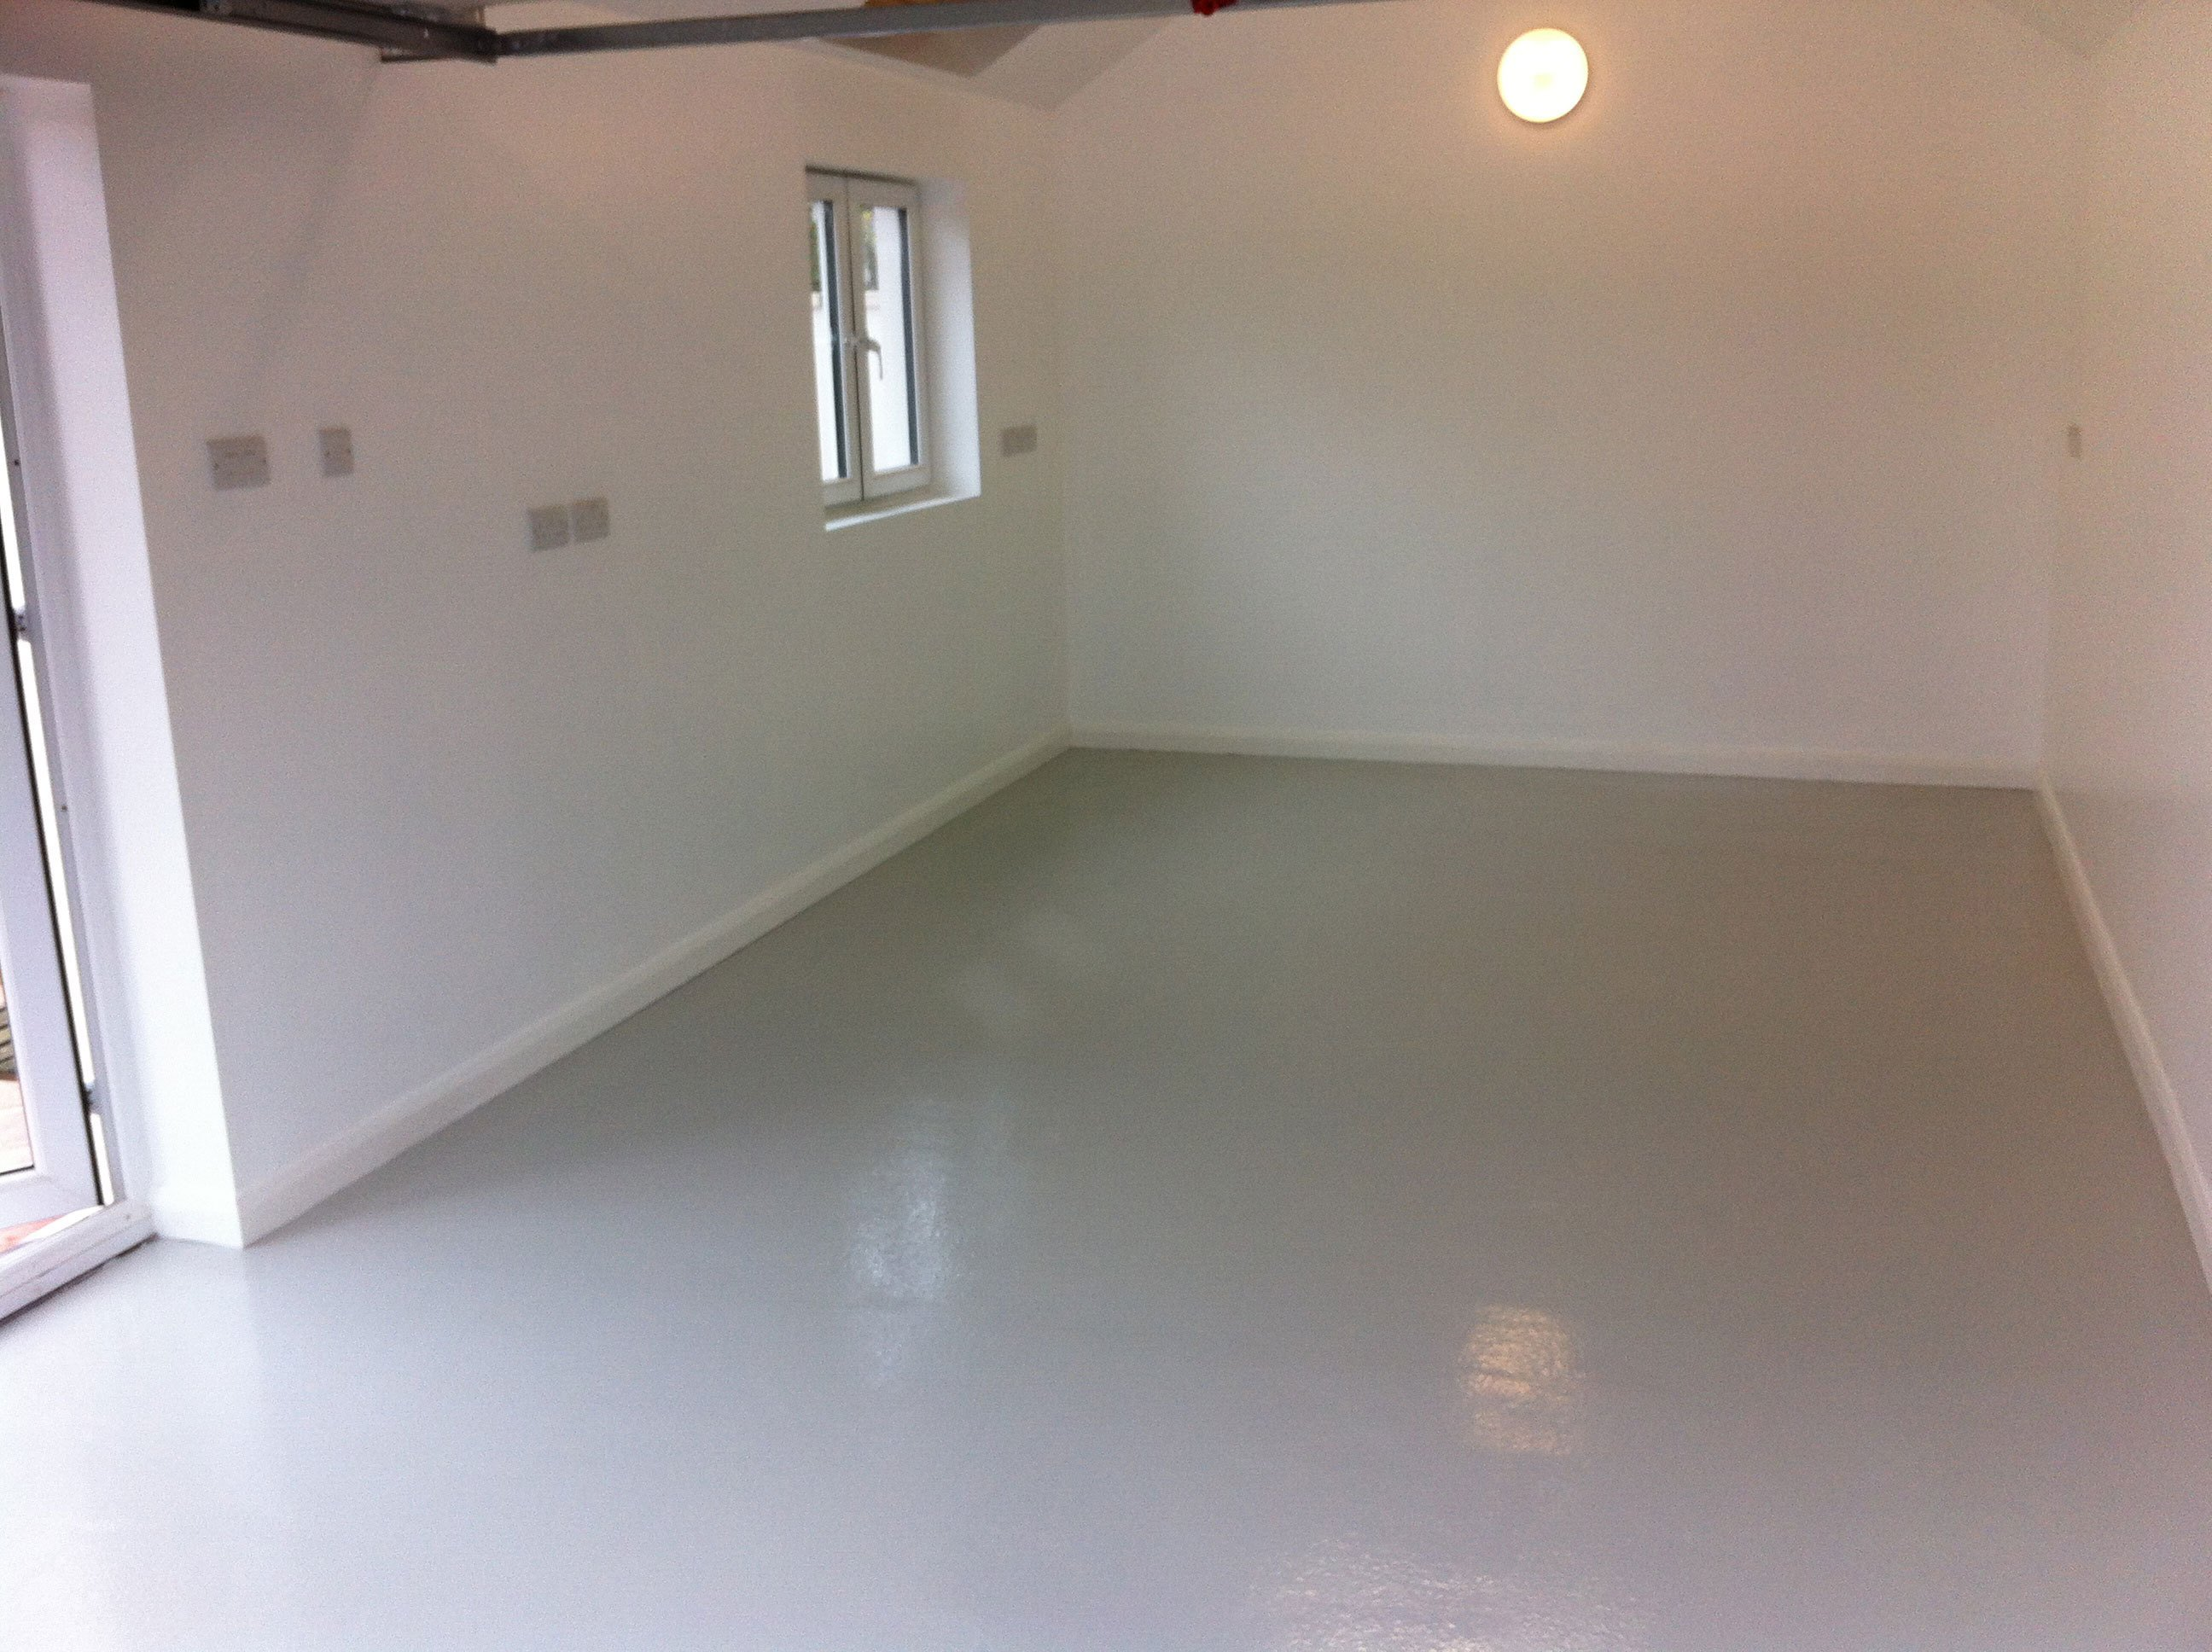 Room painted by experts in Grantham, NG